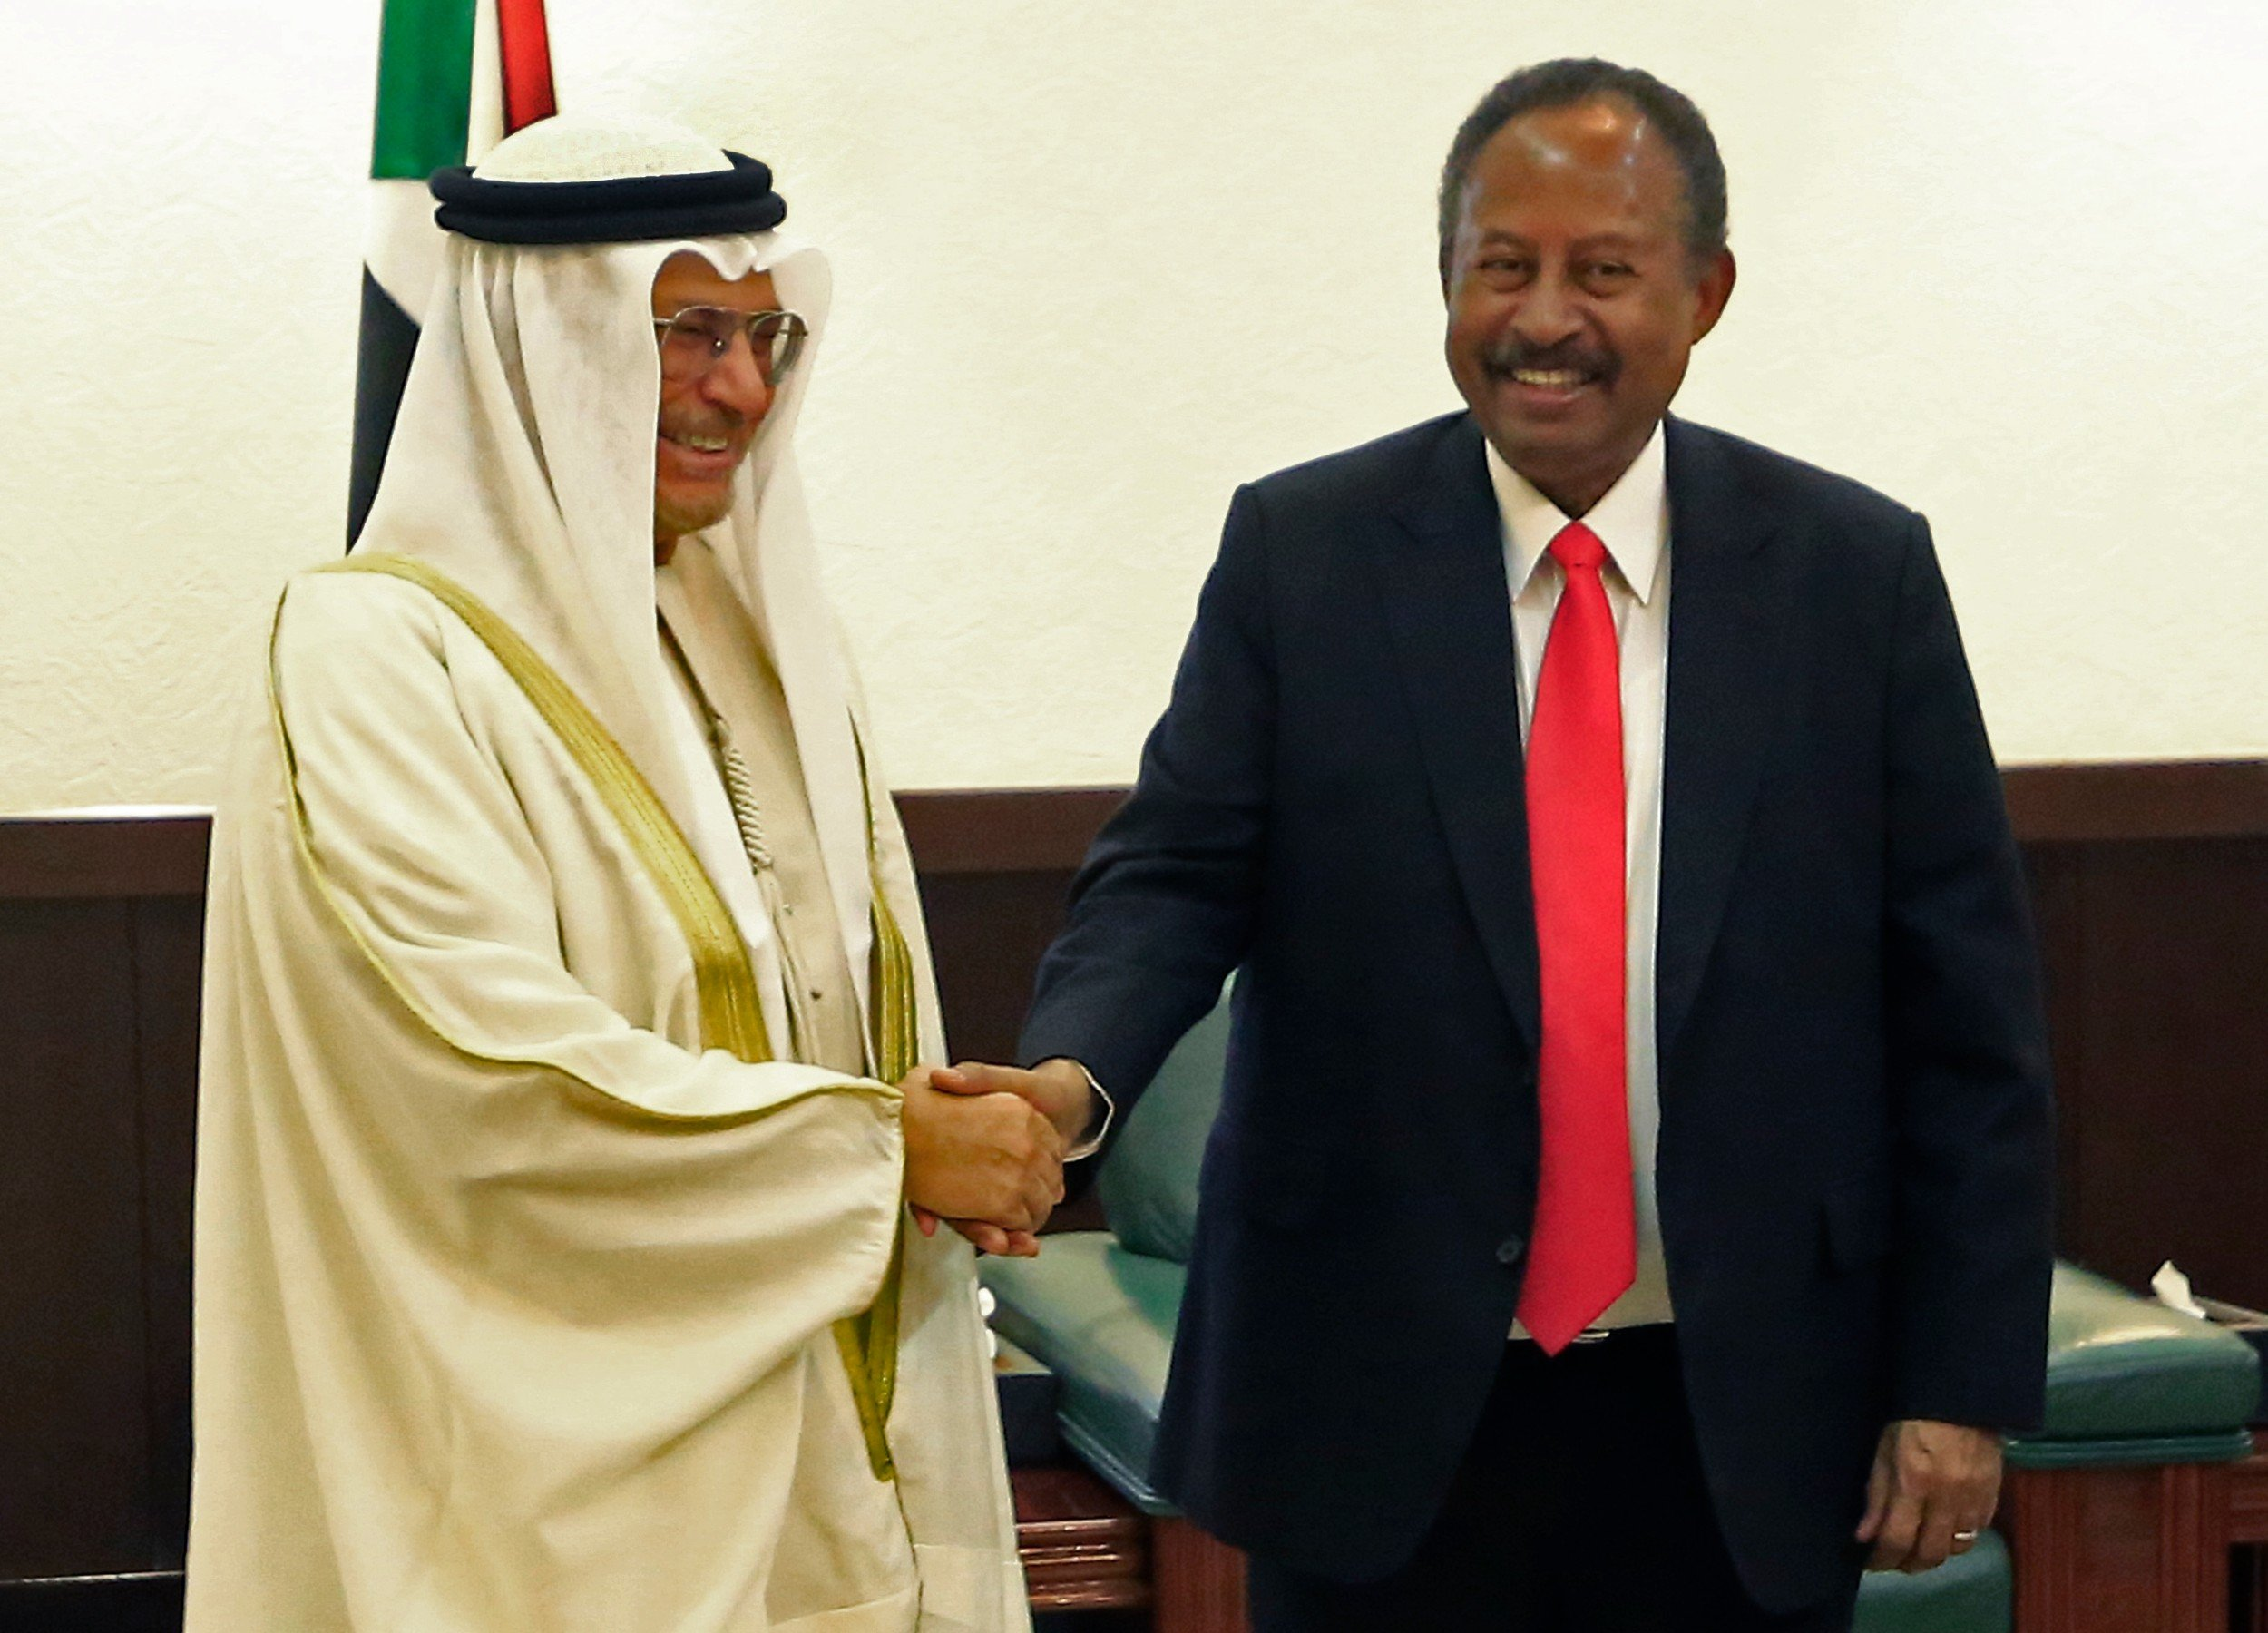 Sudan Prime Minister Abdalla Hamdok shakes hands with UAE Foreign Affairs Minister Anwar Gargash in Khartoum on 14 January. The UAE reportedly facilitated the Burhan-Netanyahu meeting (AFP)